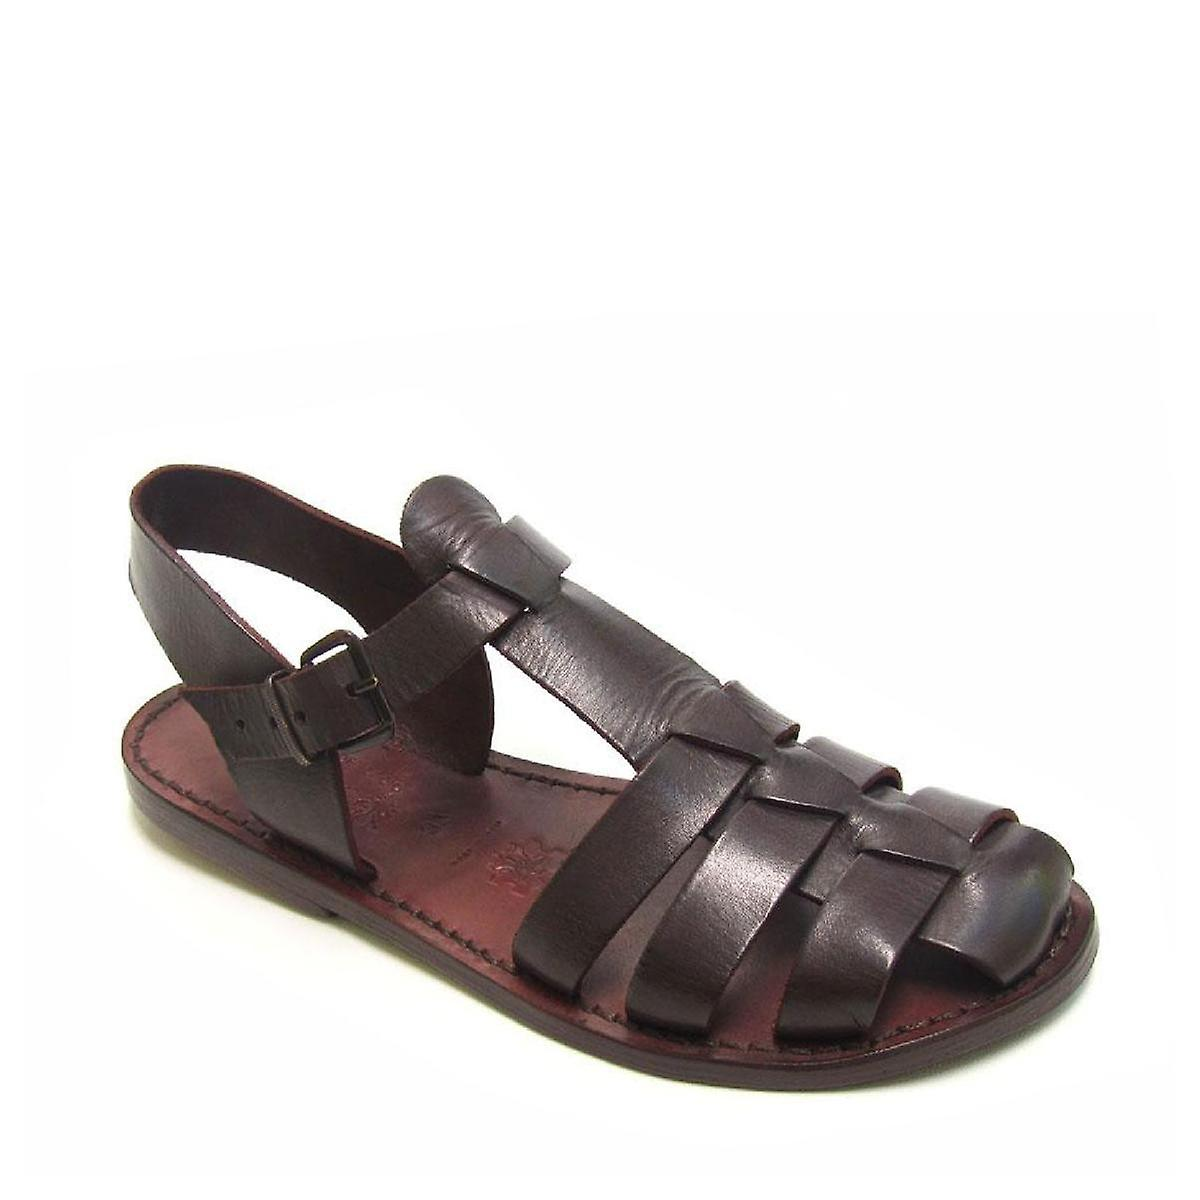 15e8aef11f4b05 Dark brown flat sandals for women real leather Handmade in Italy ...